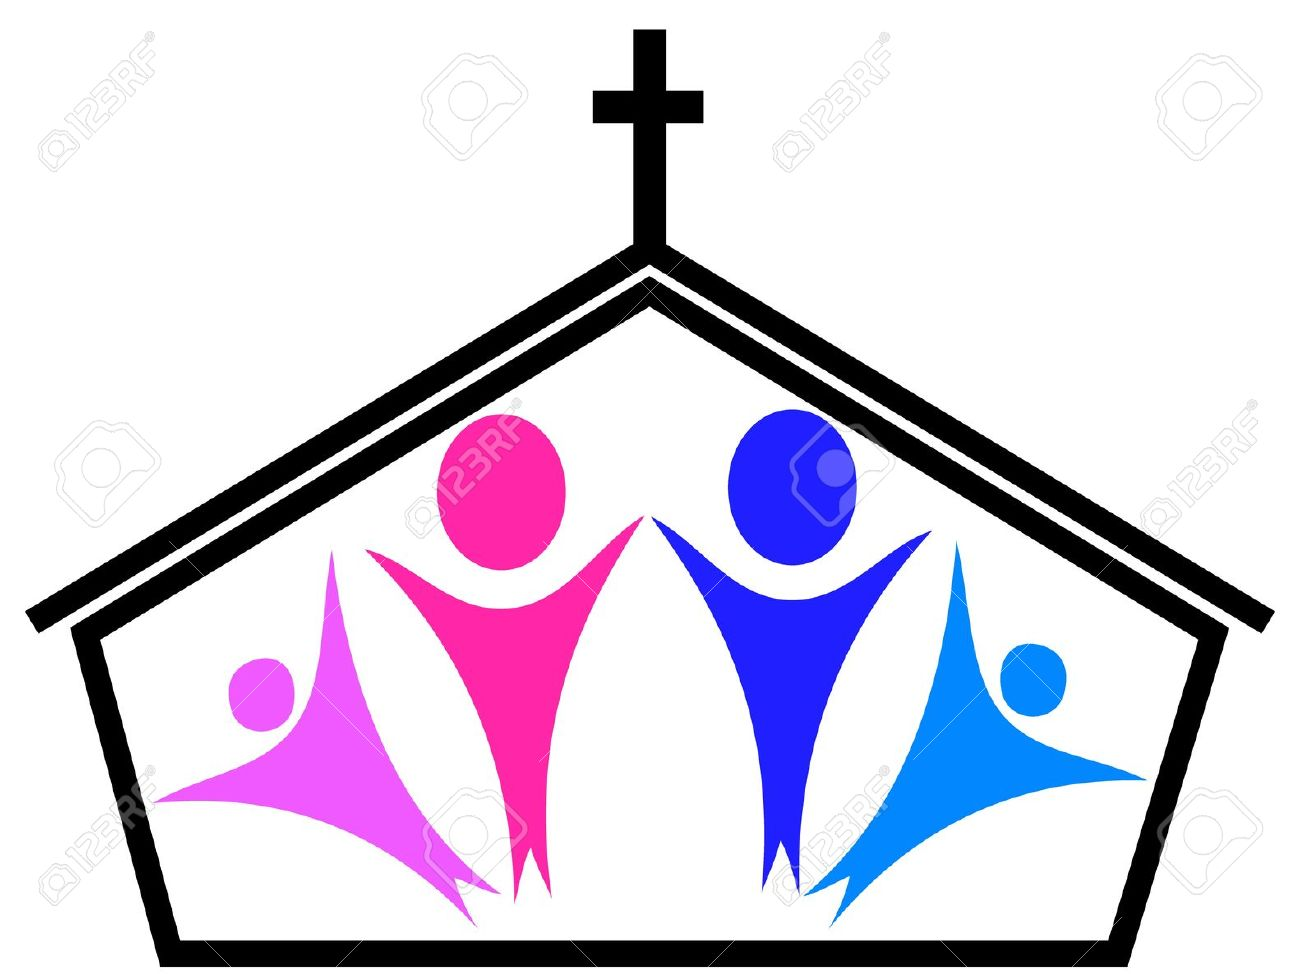 Families listening to preacher at church clipart clip art transparent library Going To Church Clipart | Free download best Going To Church Clipart ... clip art transparent library